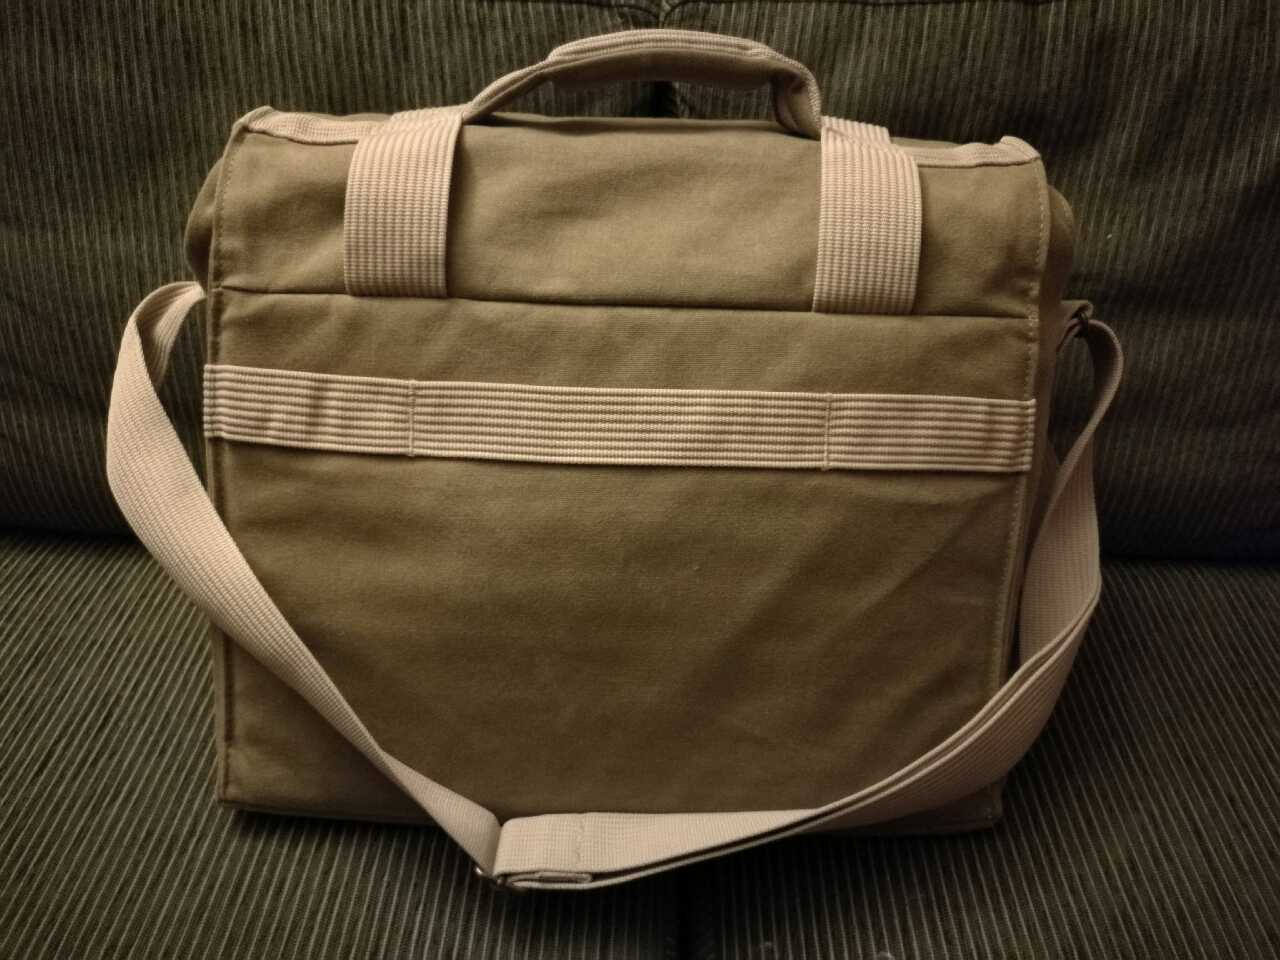 National Geographic fotobag - Norge